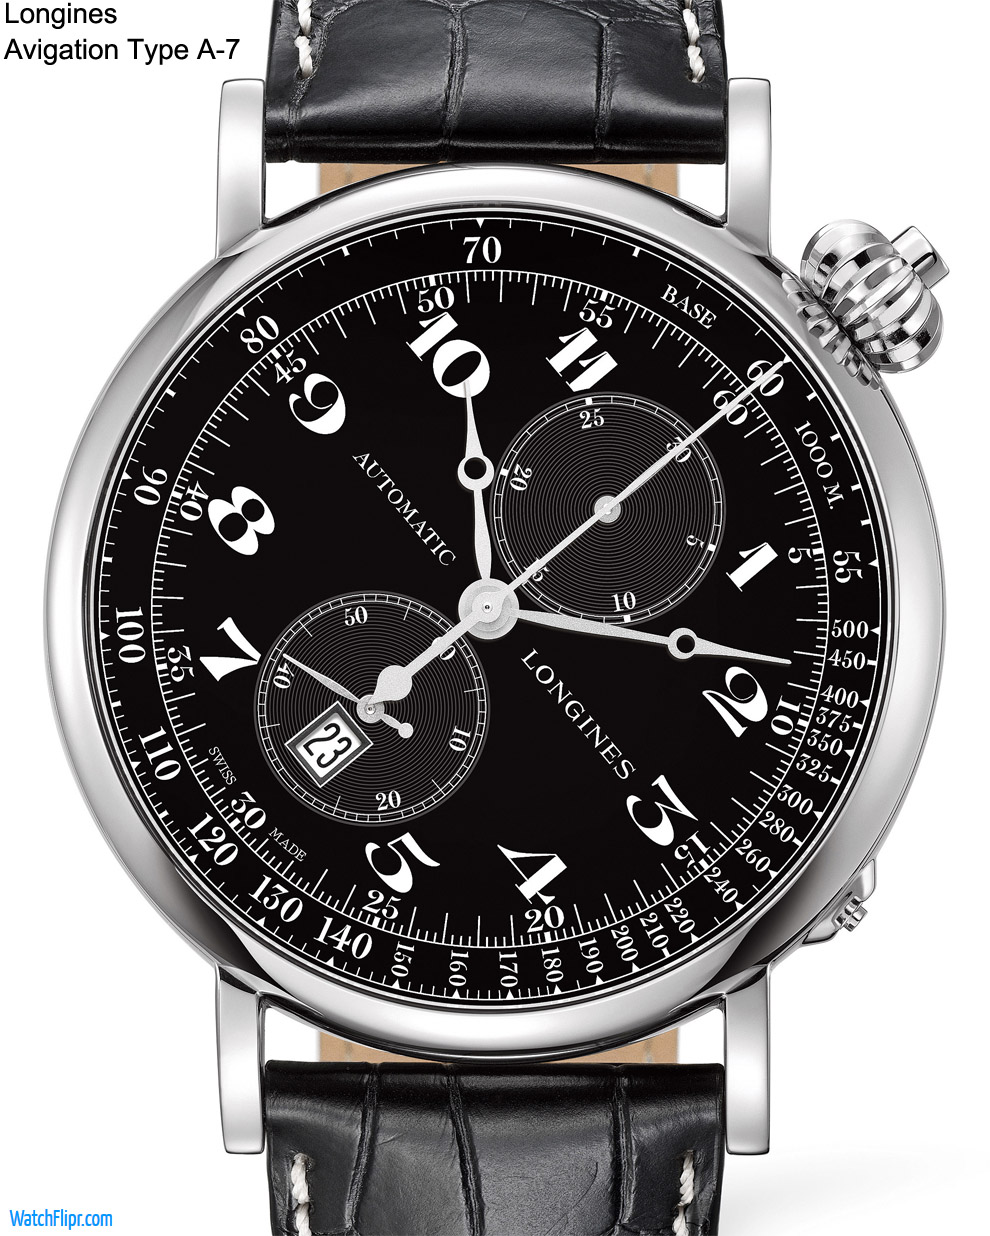 The New Longines Avigation Watch Type A-7 for 2012 - 180 Years Anniversary!